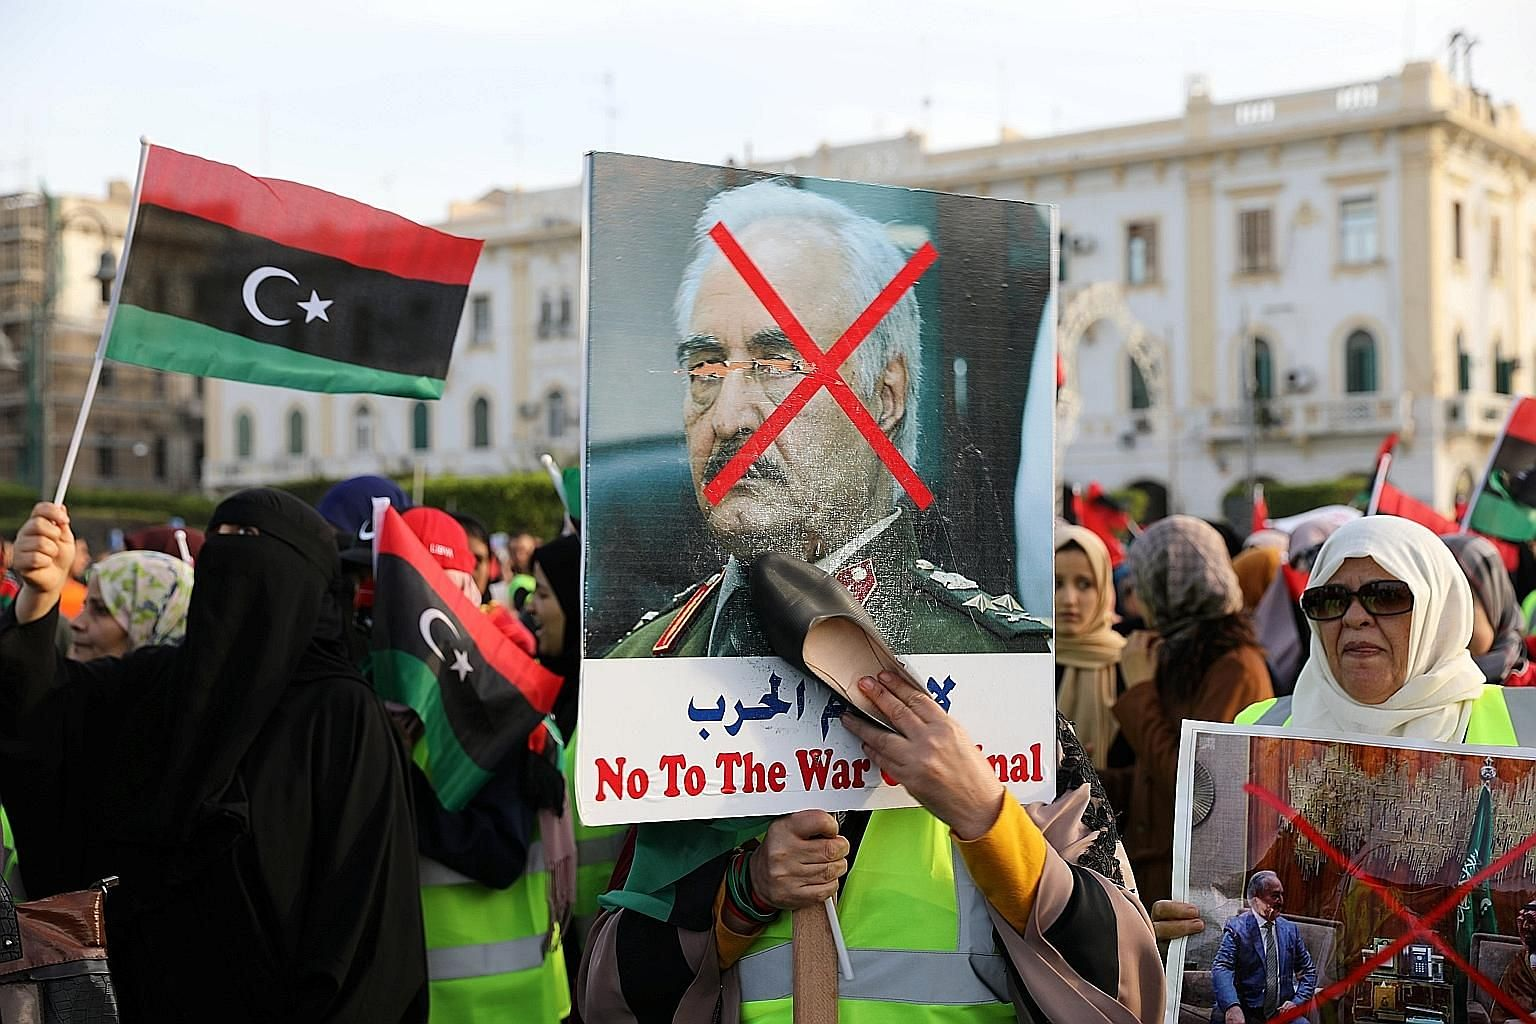 Libyan protesters attending a demonstration in Martyrs' Square last Friday to demand an end to Mr Khalifa Haftar's offensive against Tripoli. The Libyan strongman enjoys the support of Egypt, Saudi Arabia, the United Arab Emirates, Russia and now, th